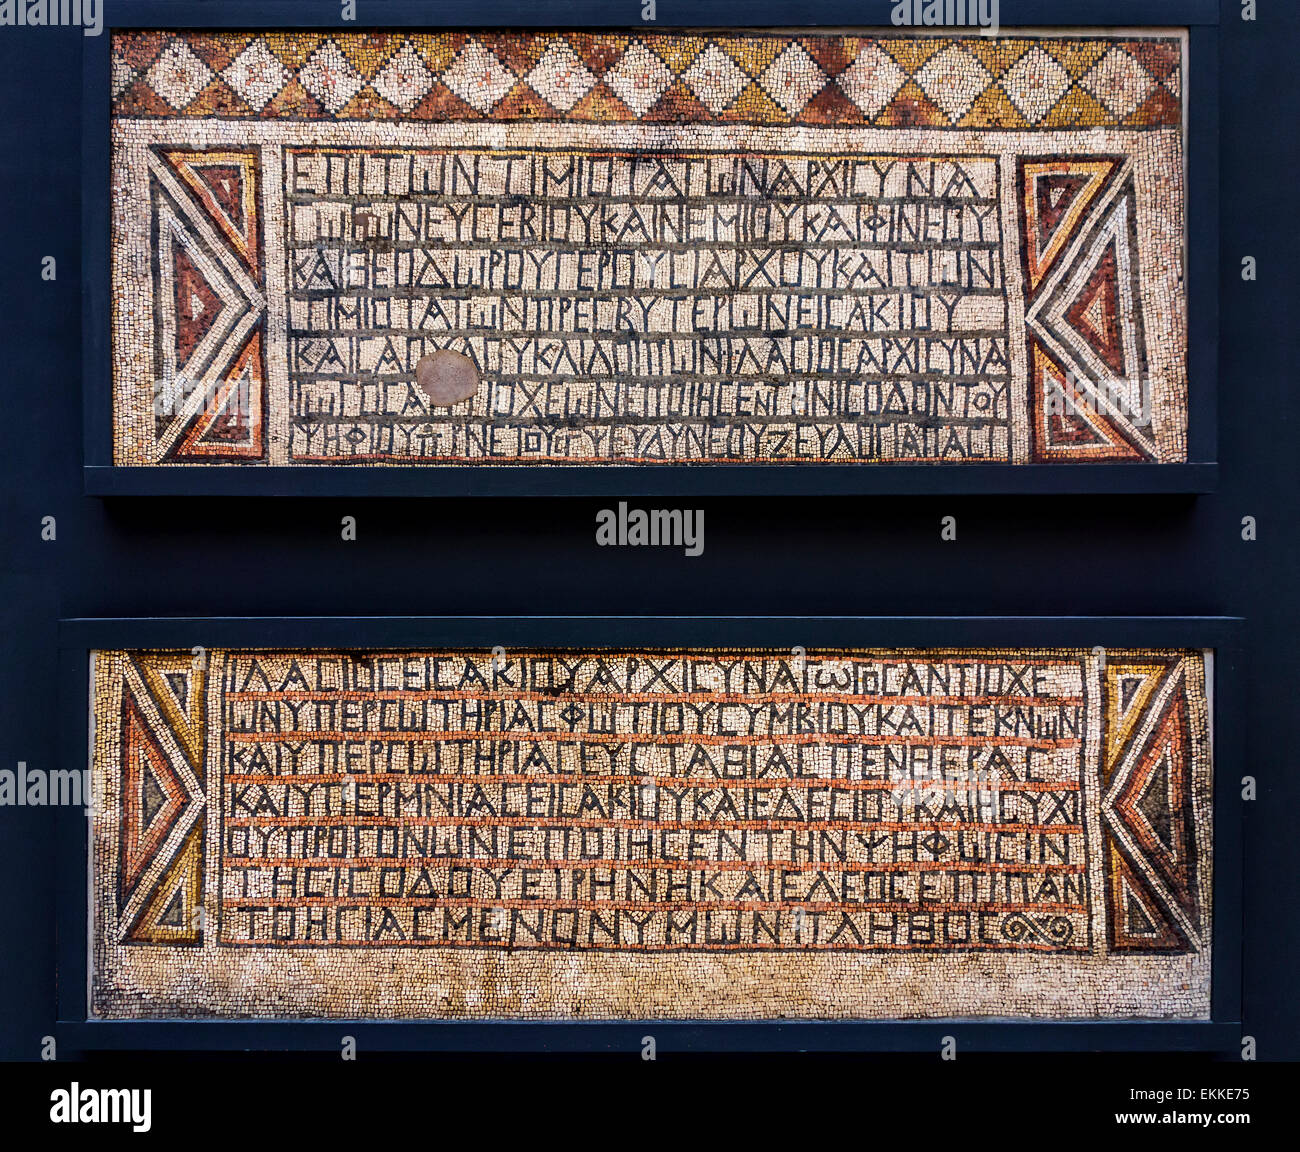 Ancient mosaic with dedication from the Apamea synagogue, Syria - Stock Image